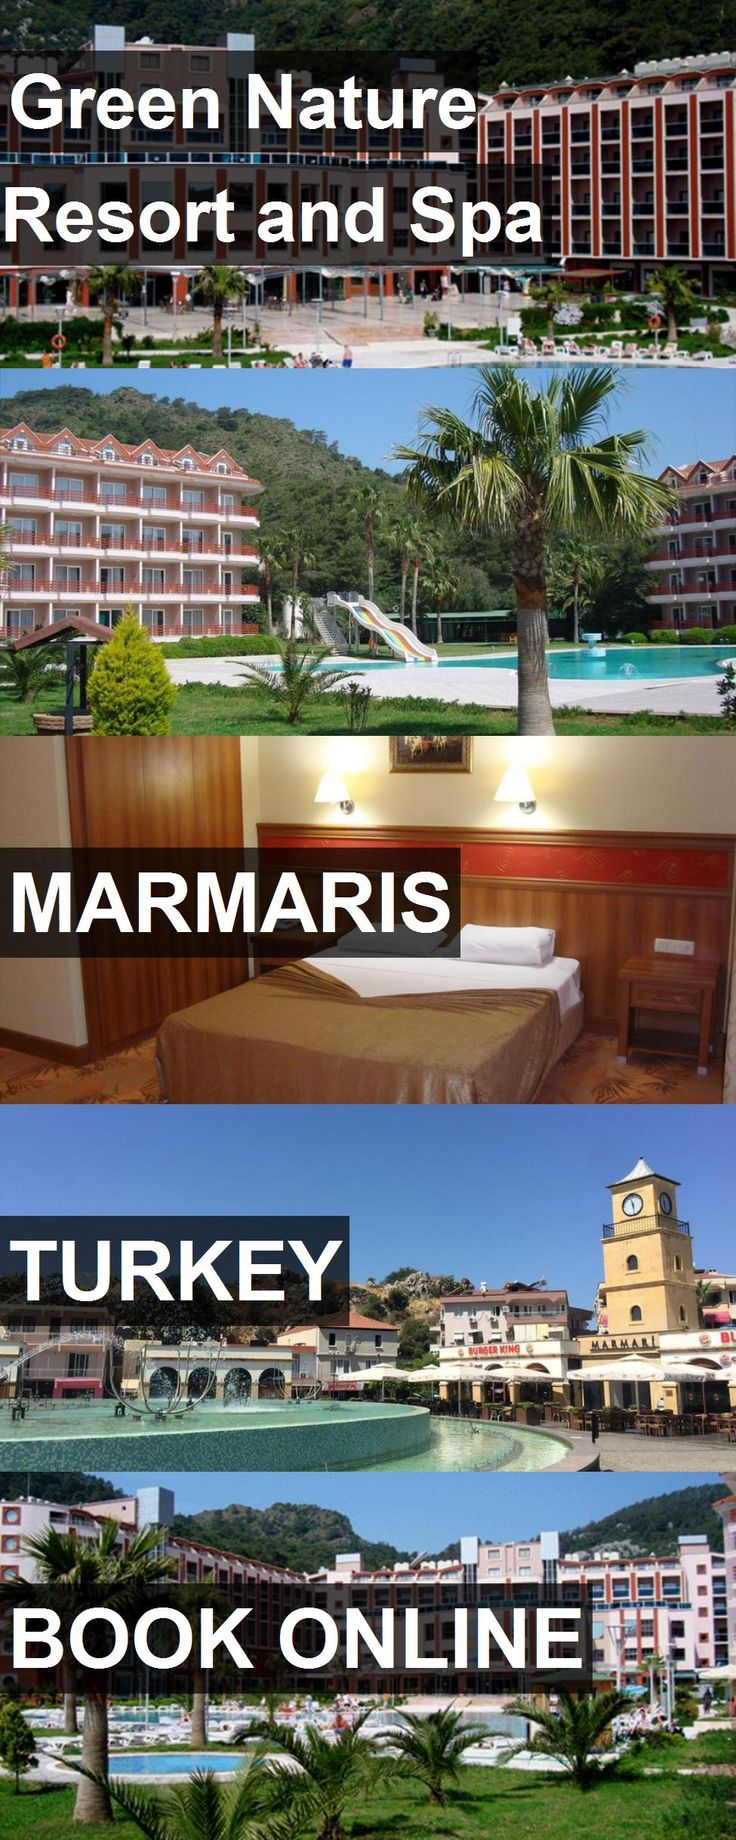 Hotel Green Nature Resort and Spa in Marmaris, Turkey. For more information, photos, reviews and best prices please follow the link. #Turkey #Marmaris #travel #vacation #hotel